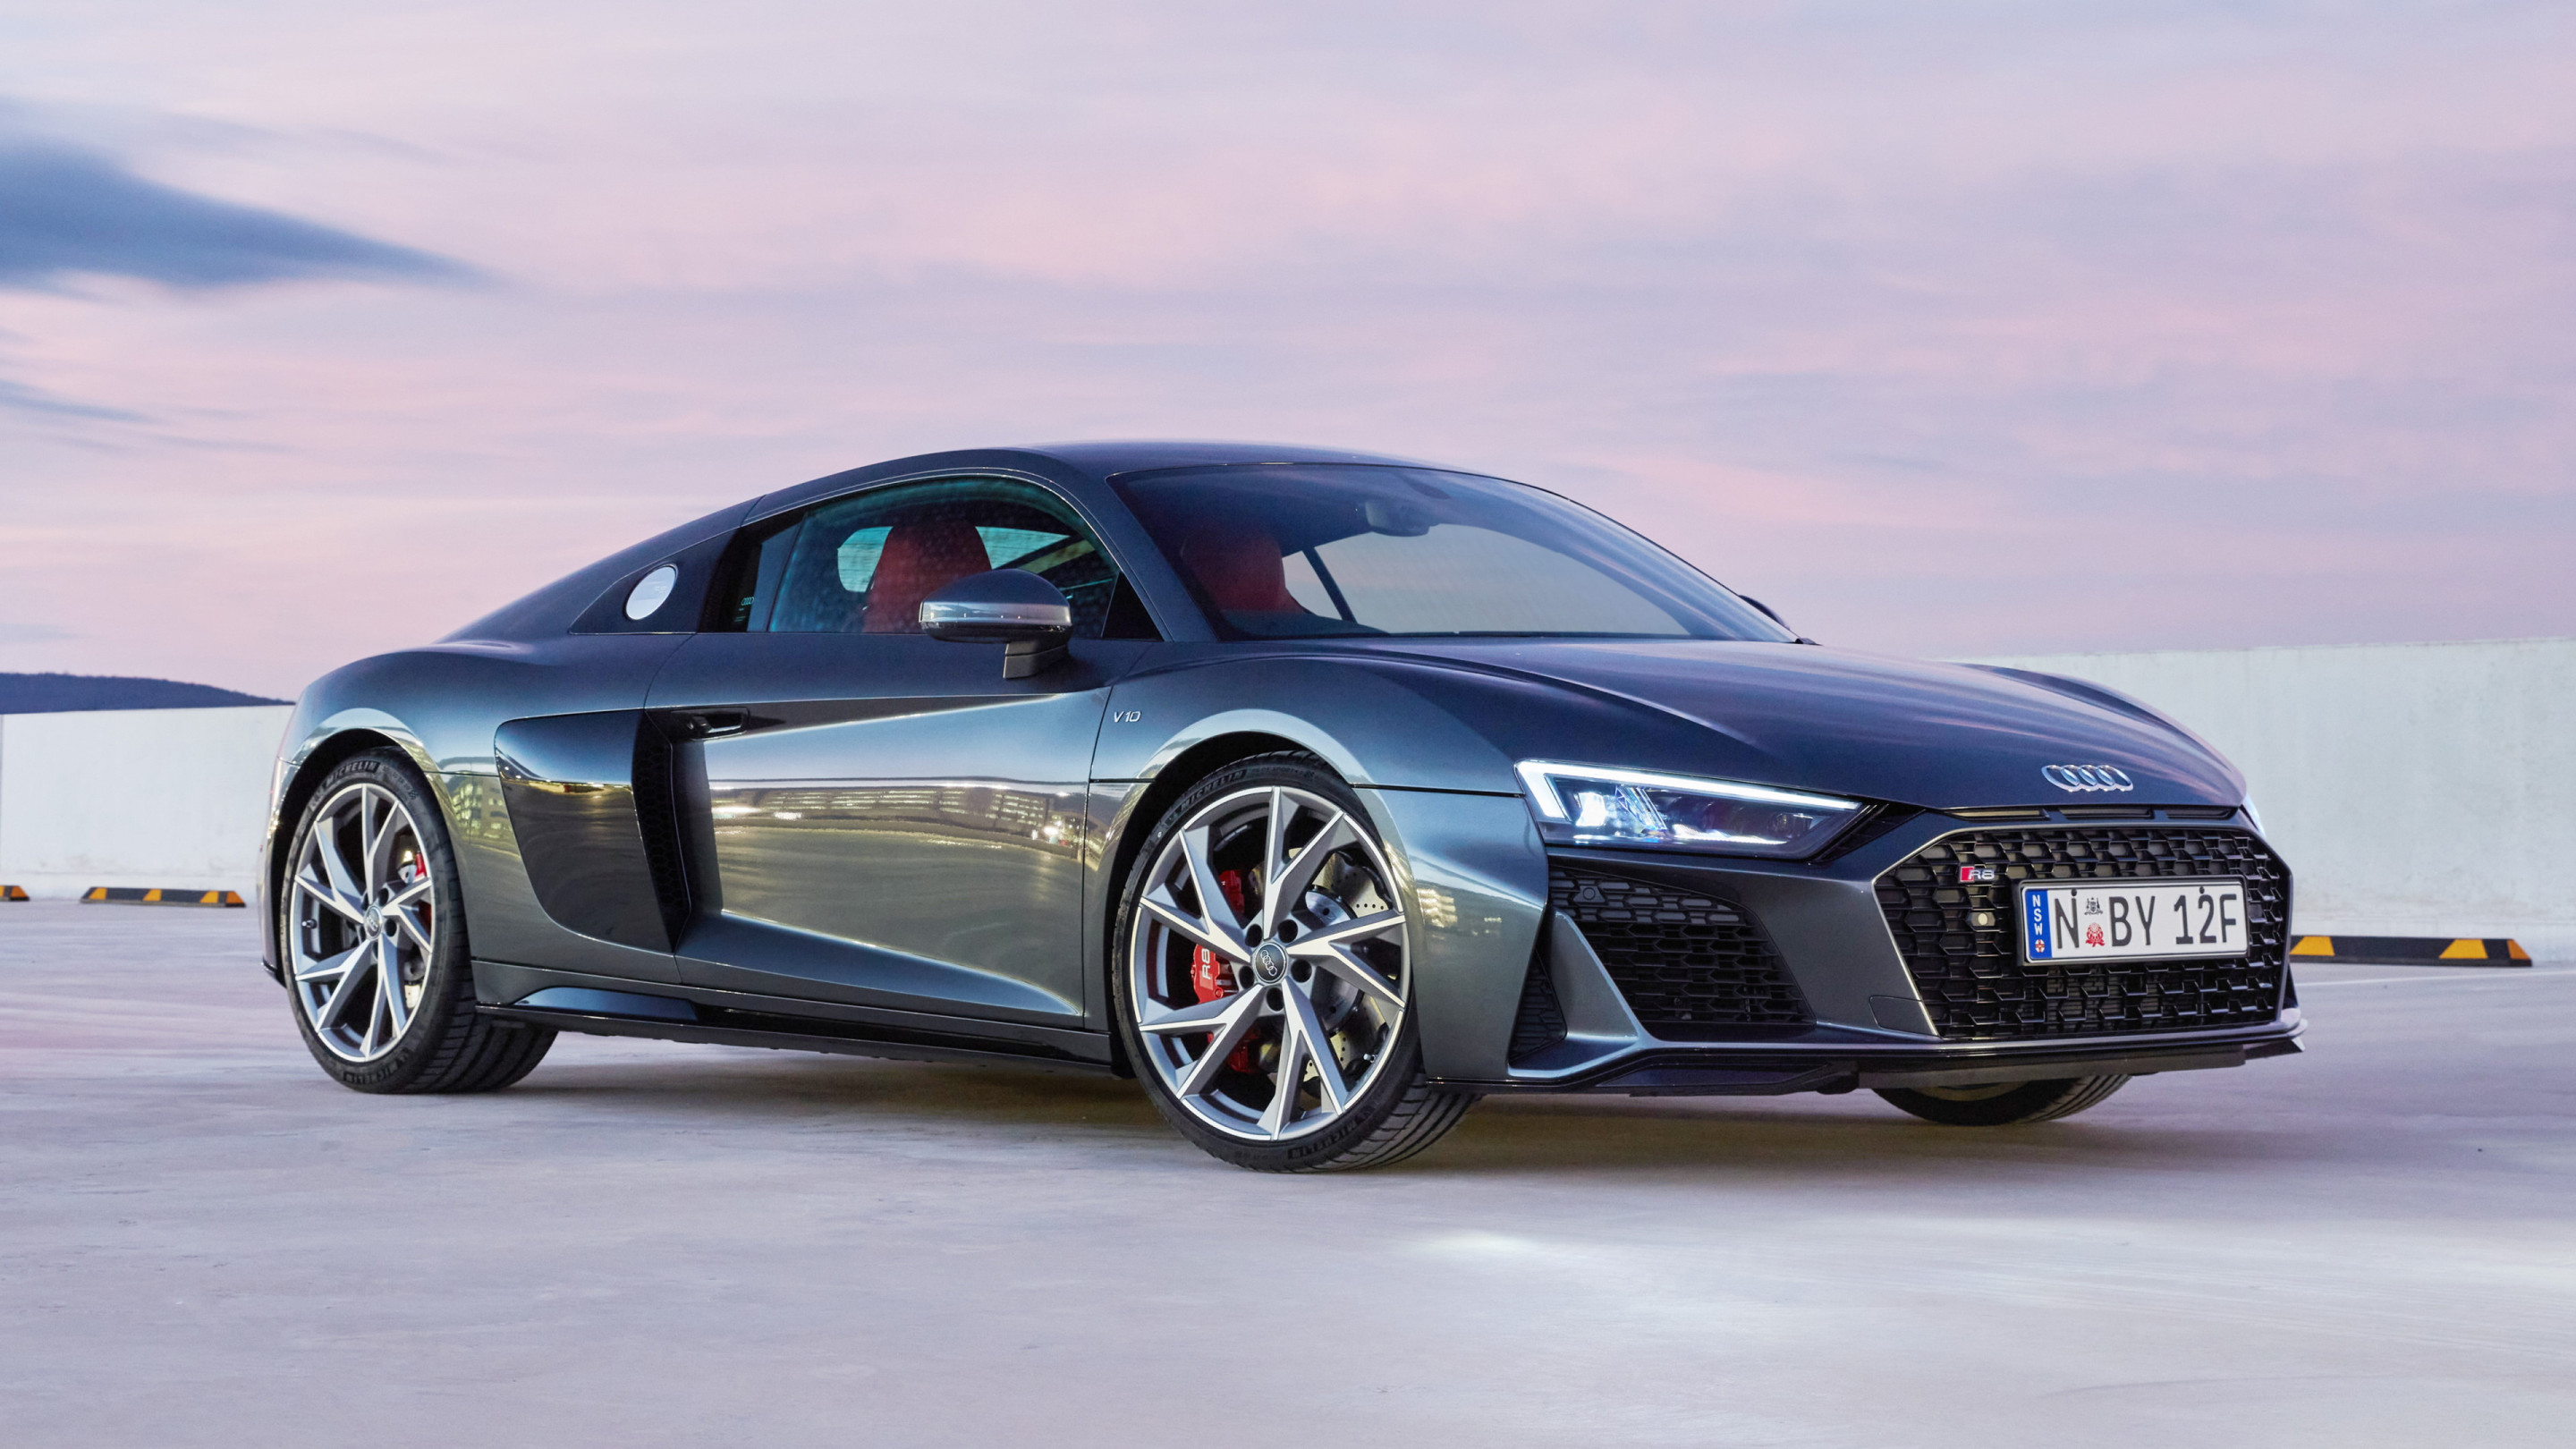 Audi R8 V10 RWD Coupe wallpaper 2880x1620